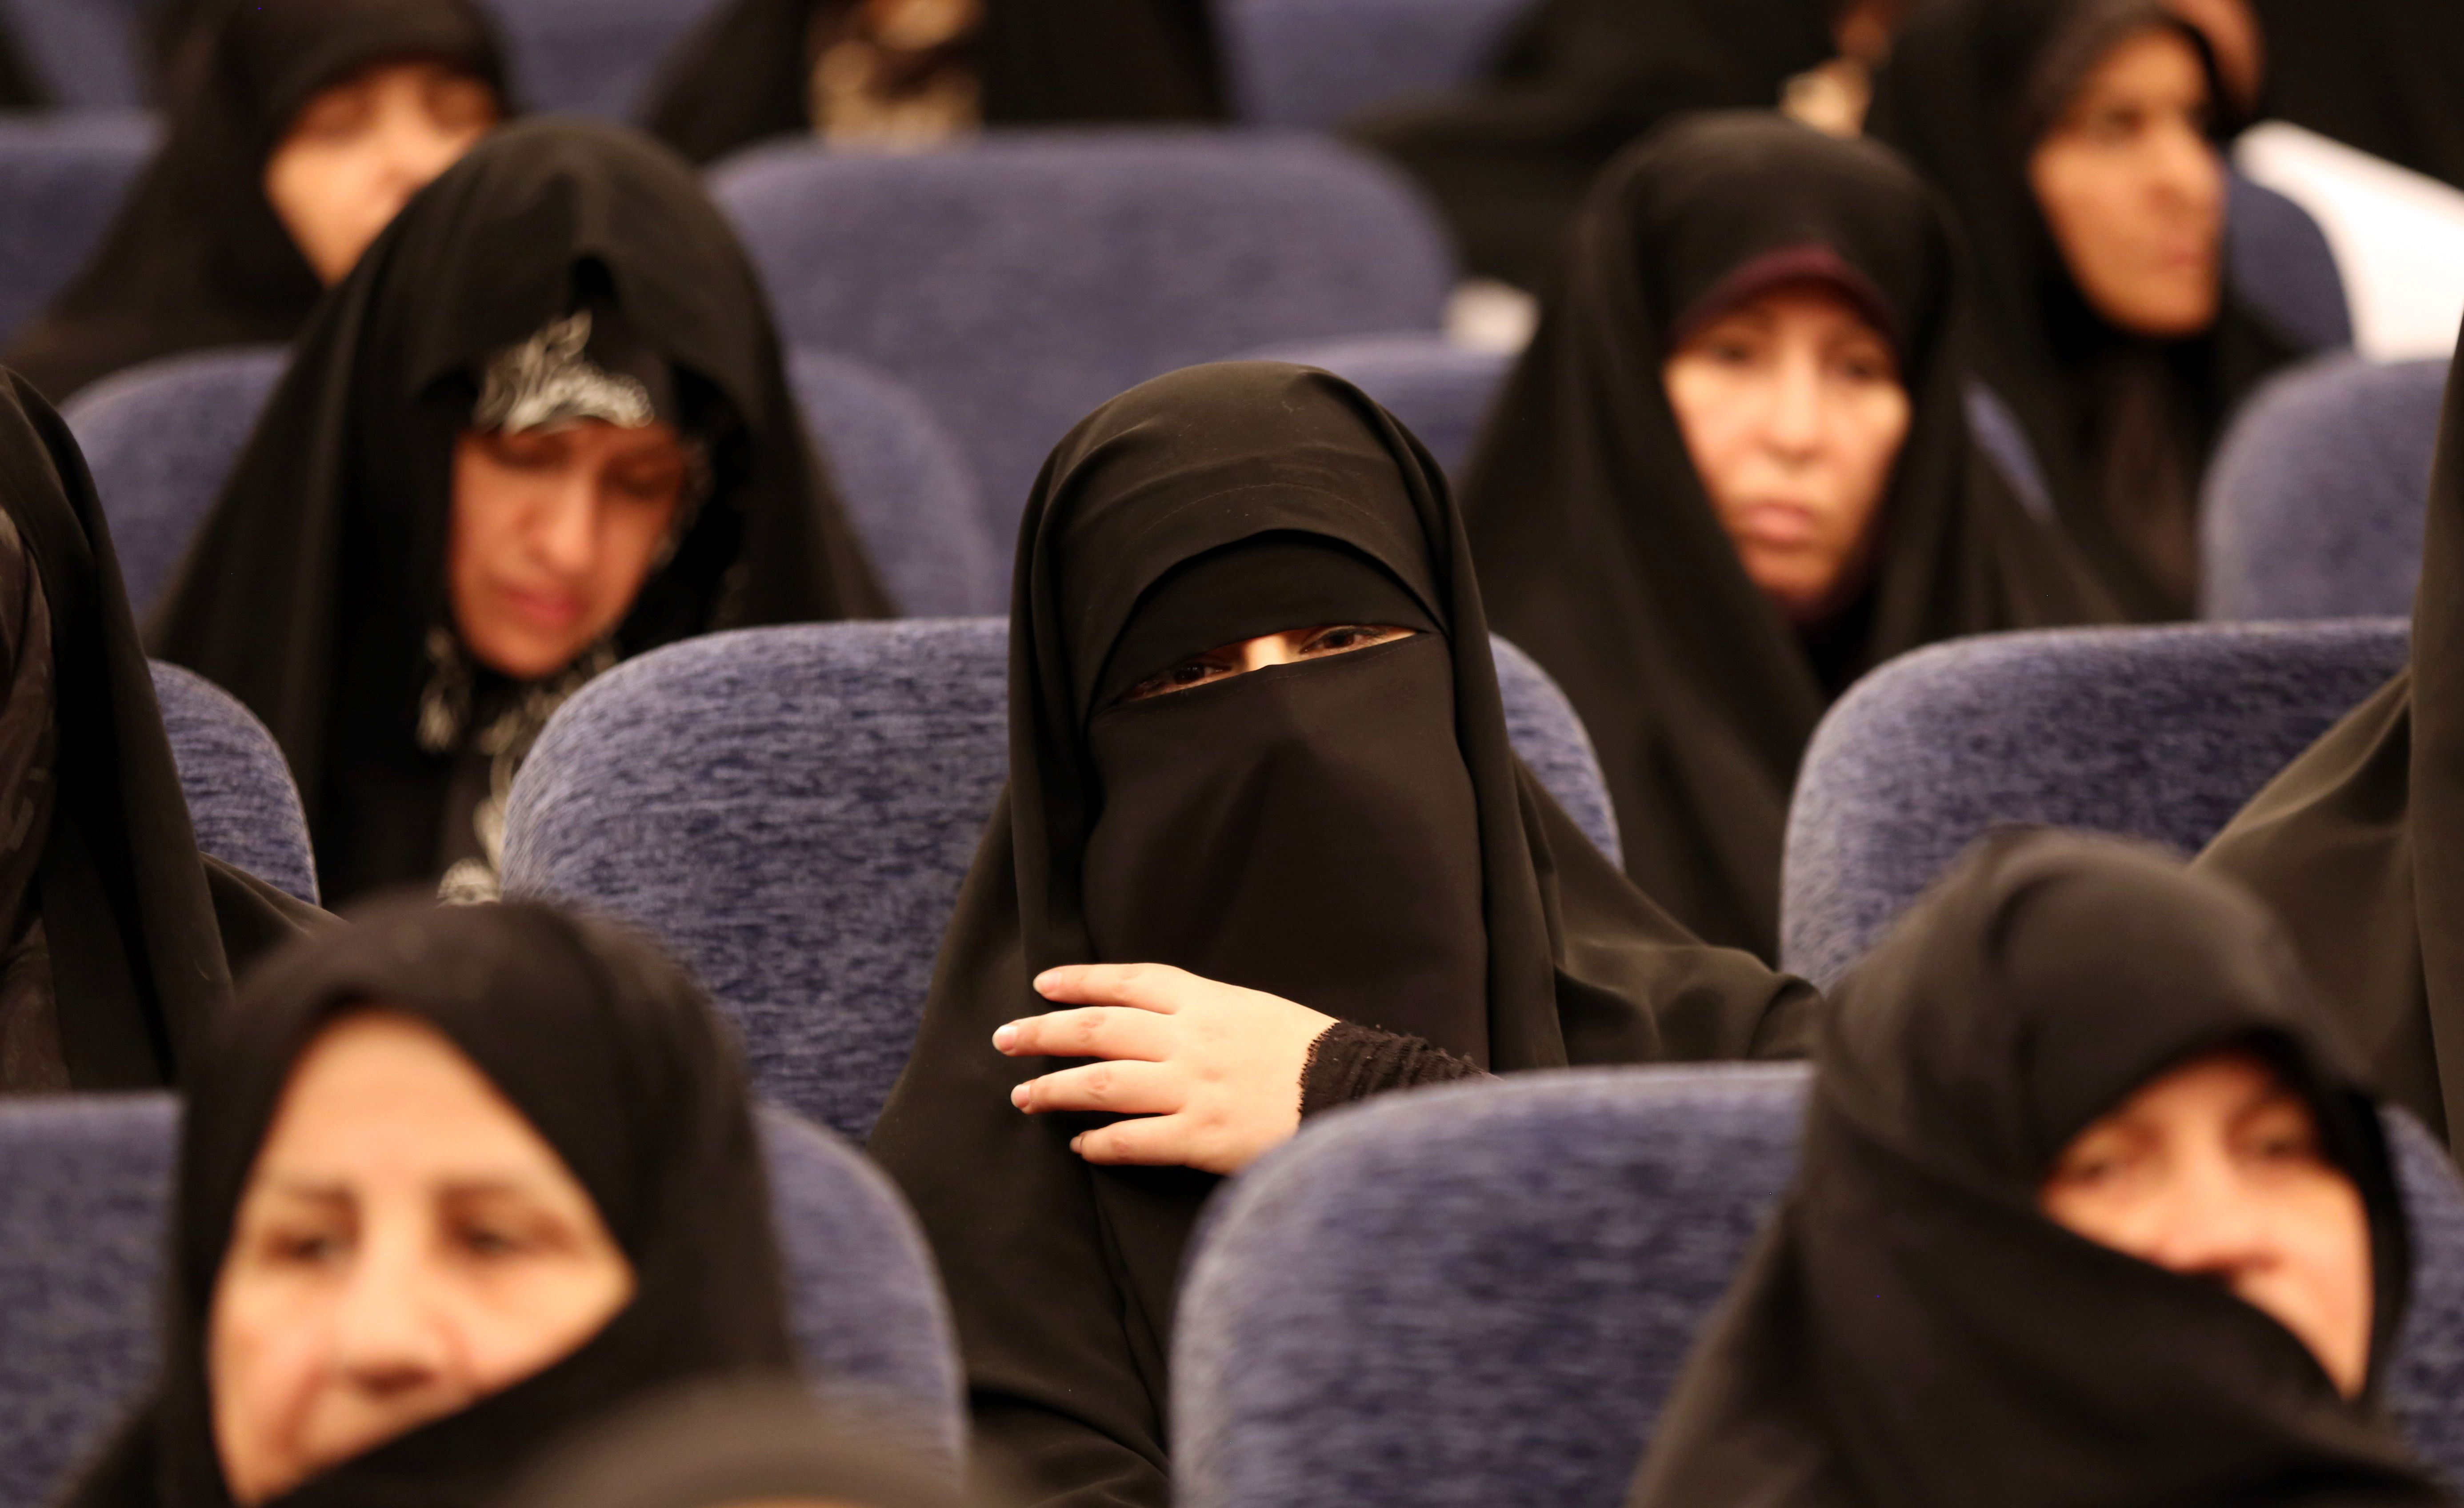 Iranian women at a conservative coalition meeting for parliamentary elections (Photo: ATTA KENARE/AFP/Getty Images)